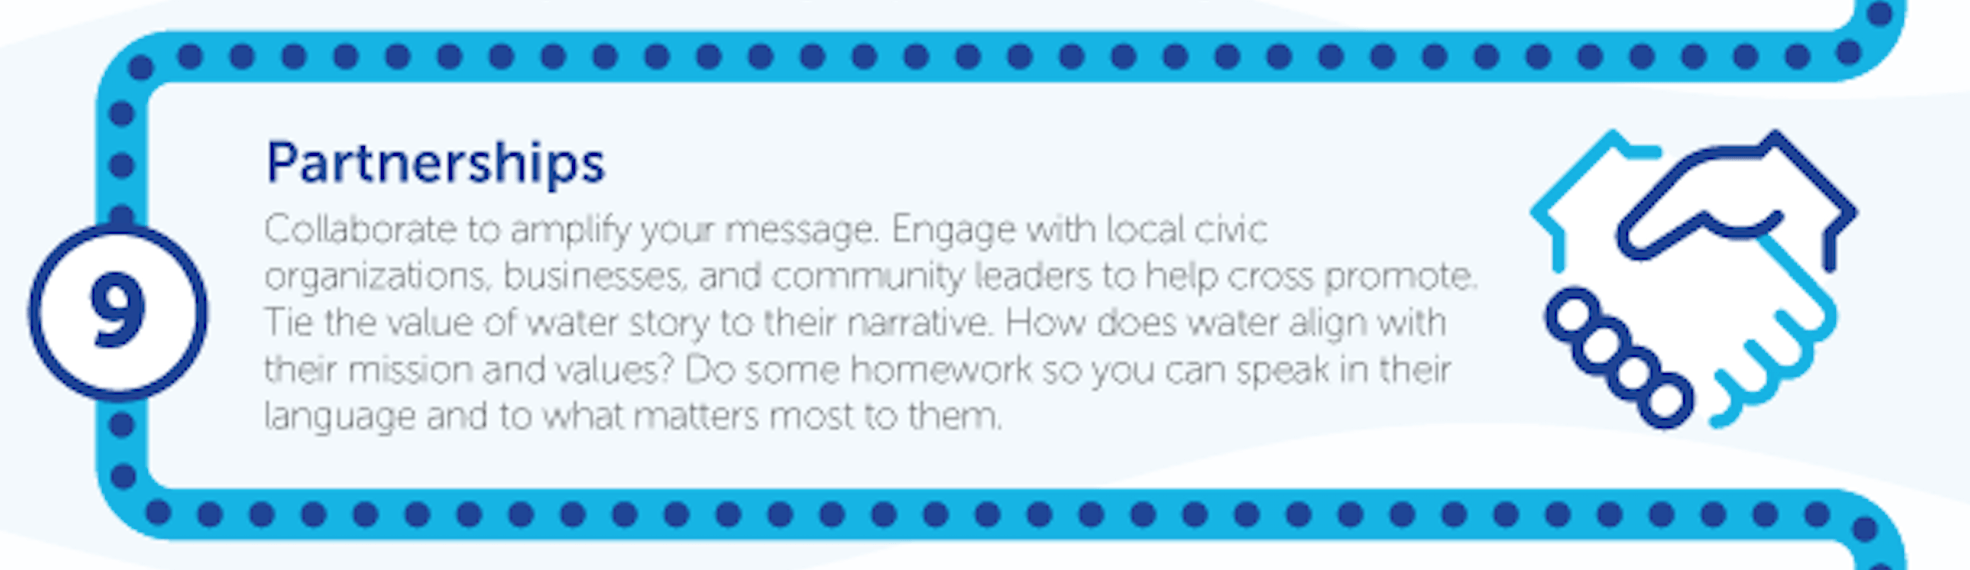 Use Partnerships to Communicate the Value of Water to New Audiences